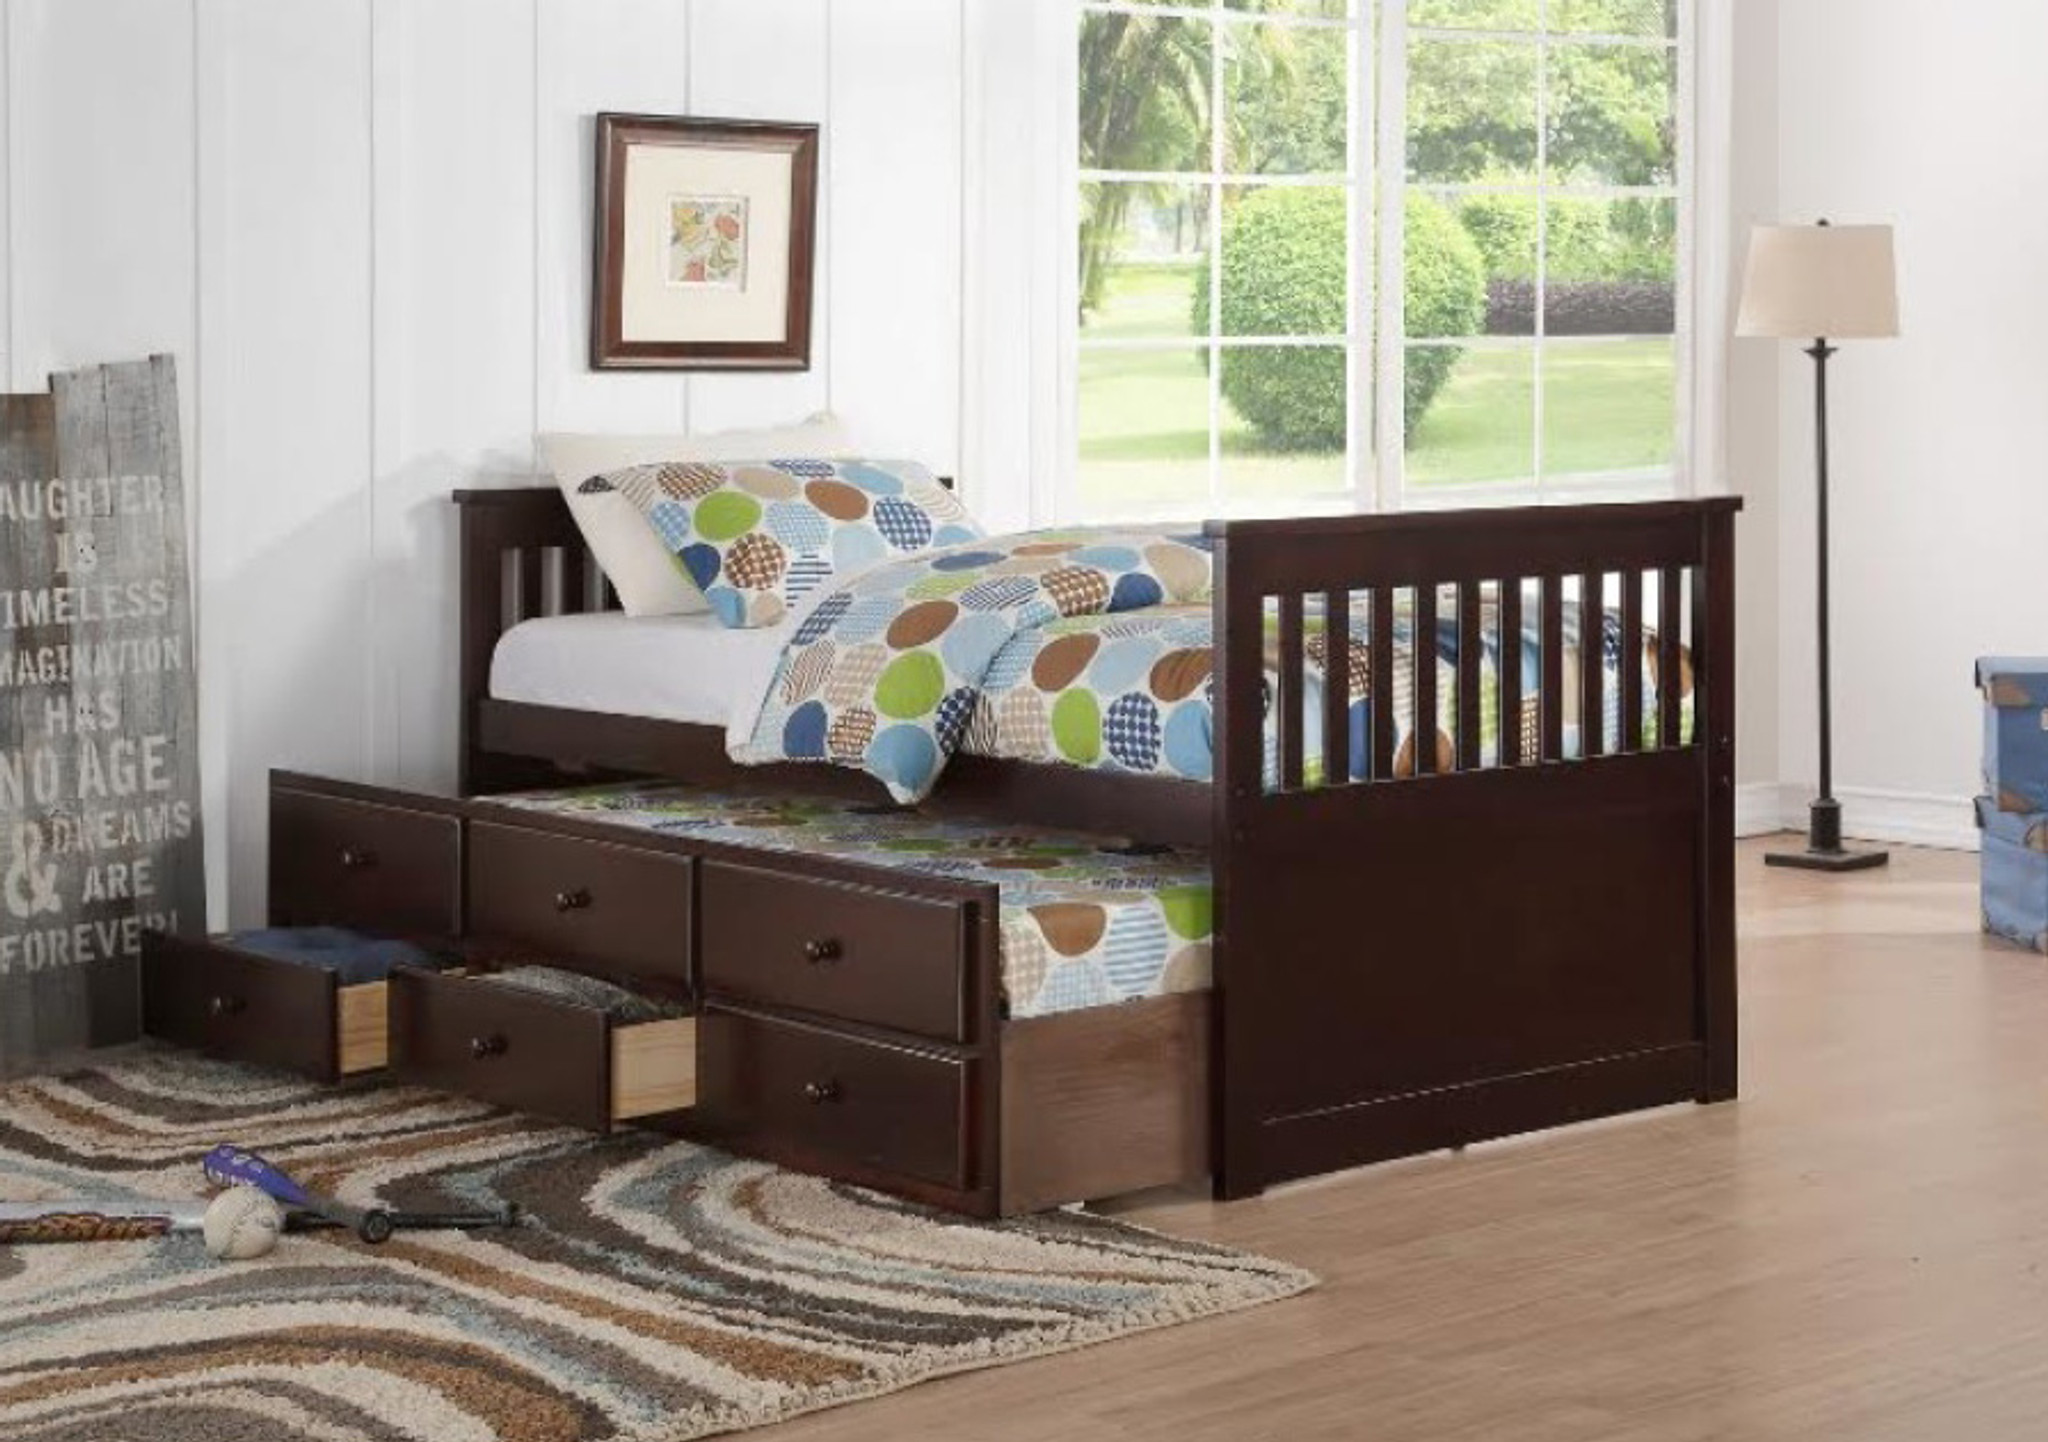 Hh8000 Twin Captain Bed Wtrundle And Drawers Unit Collection By